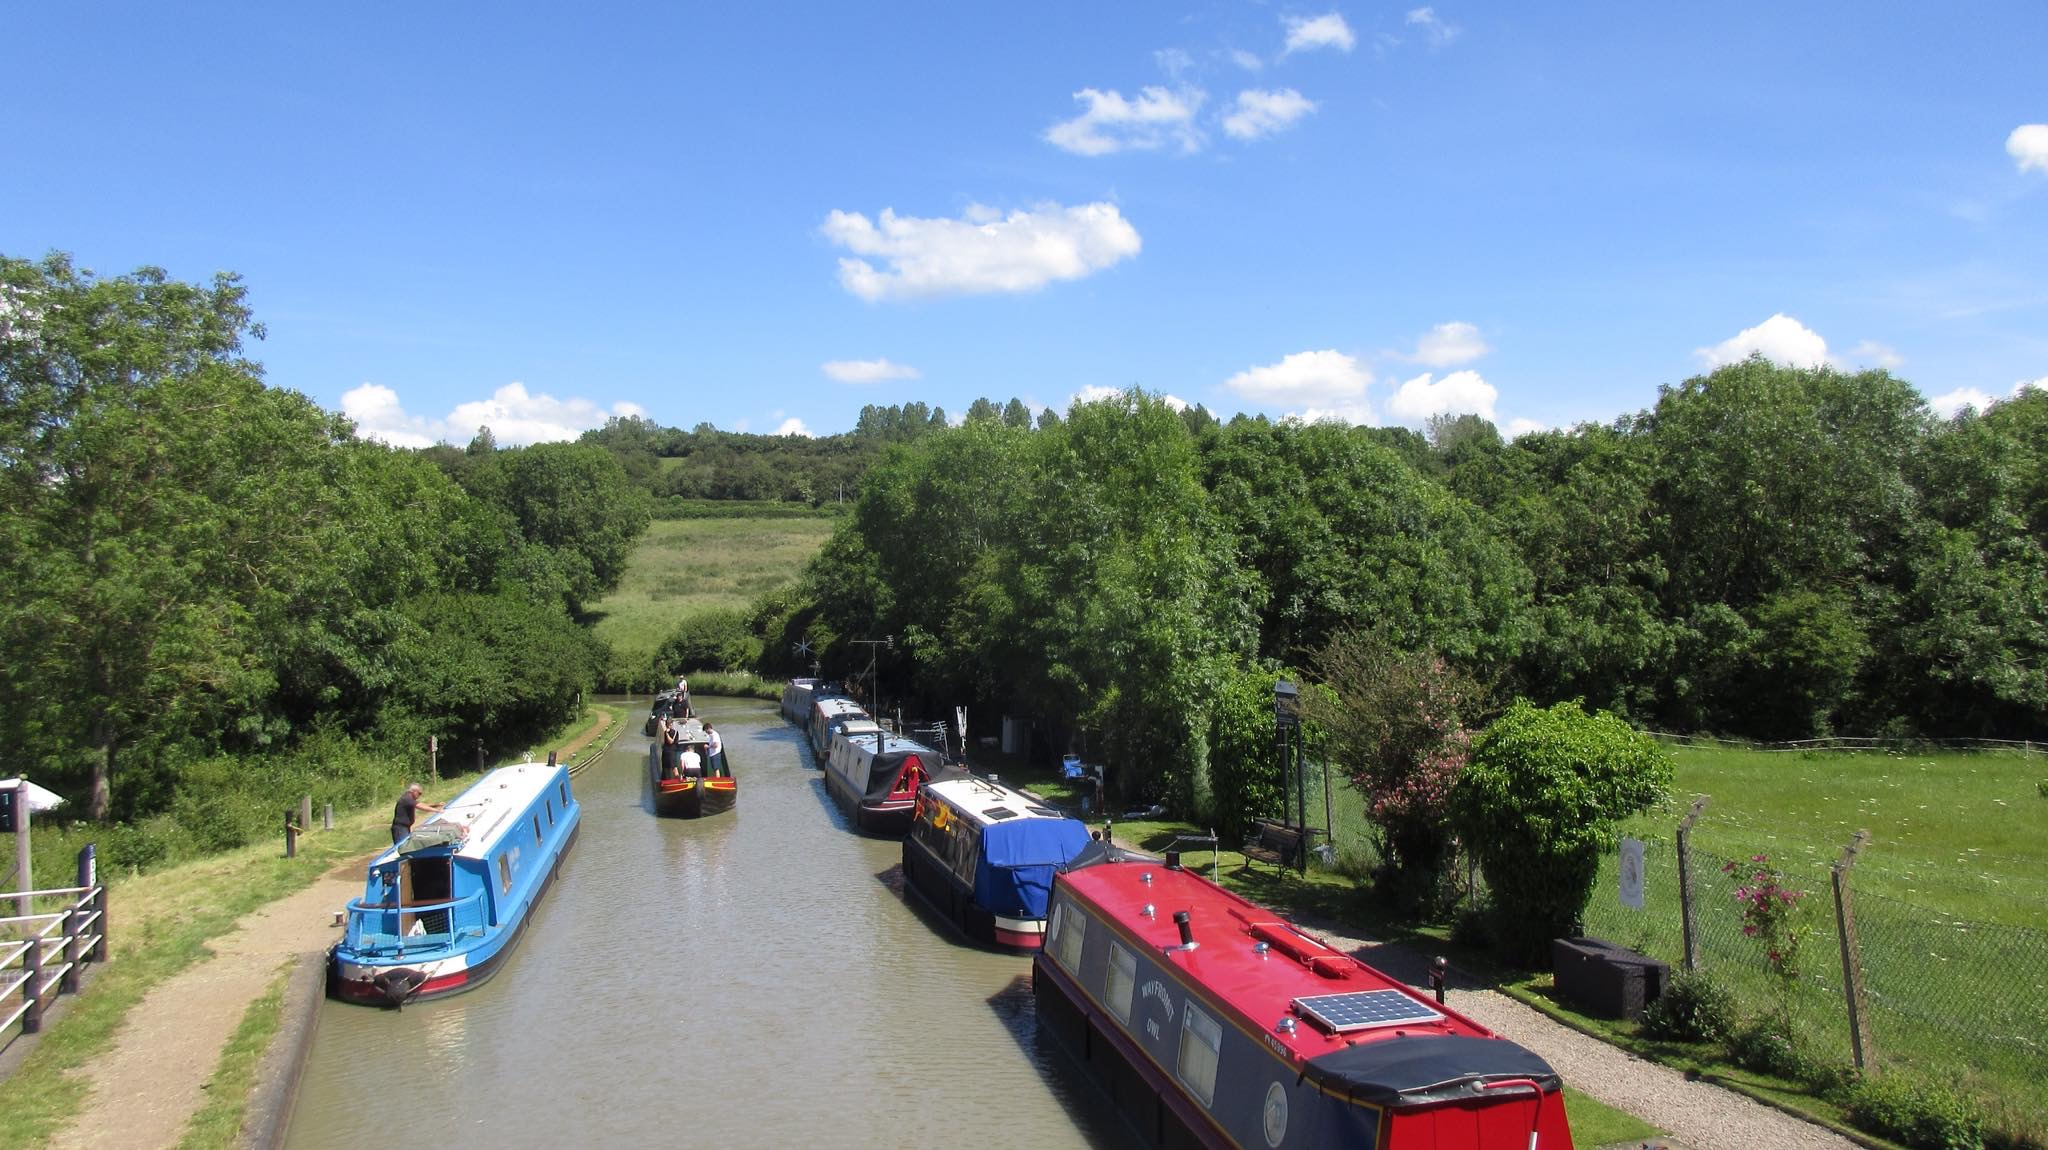 Napton-on-the-Hill: canals, parkland and fields